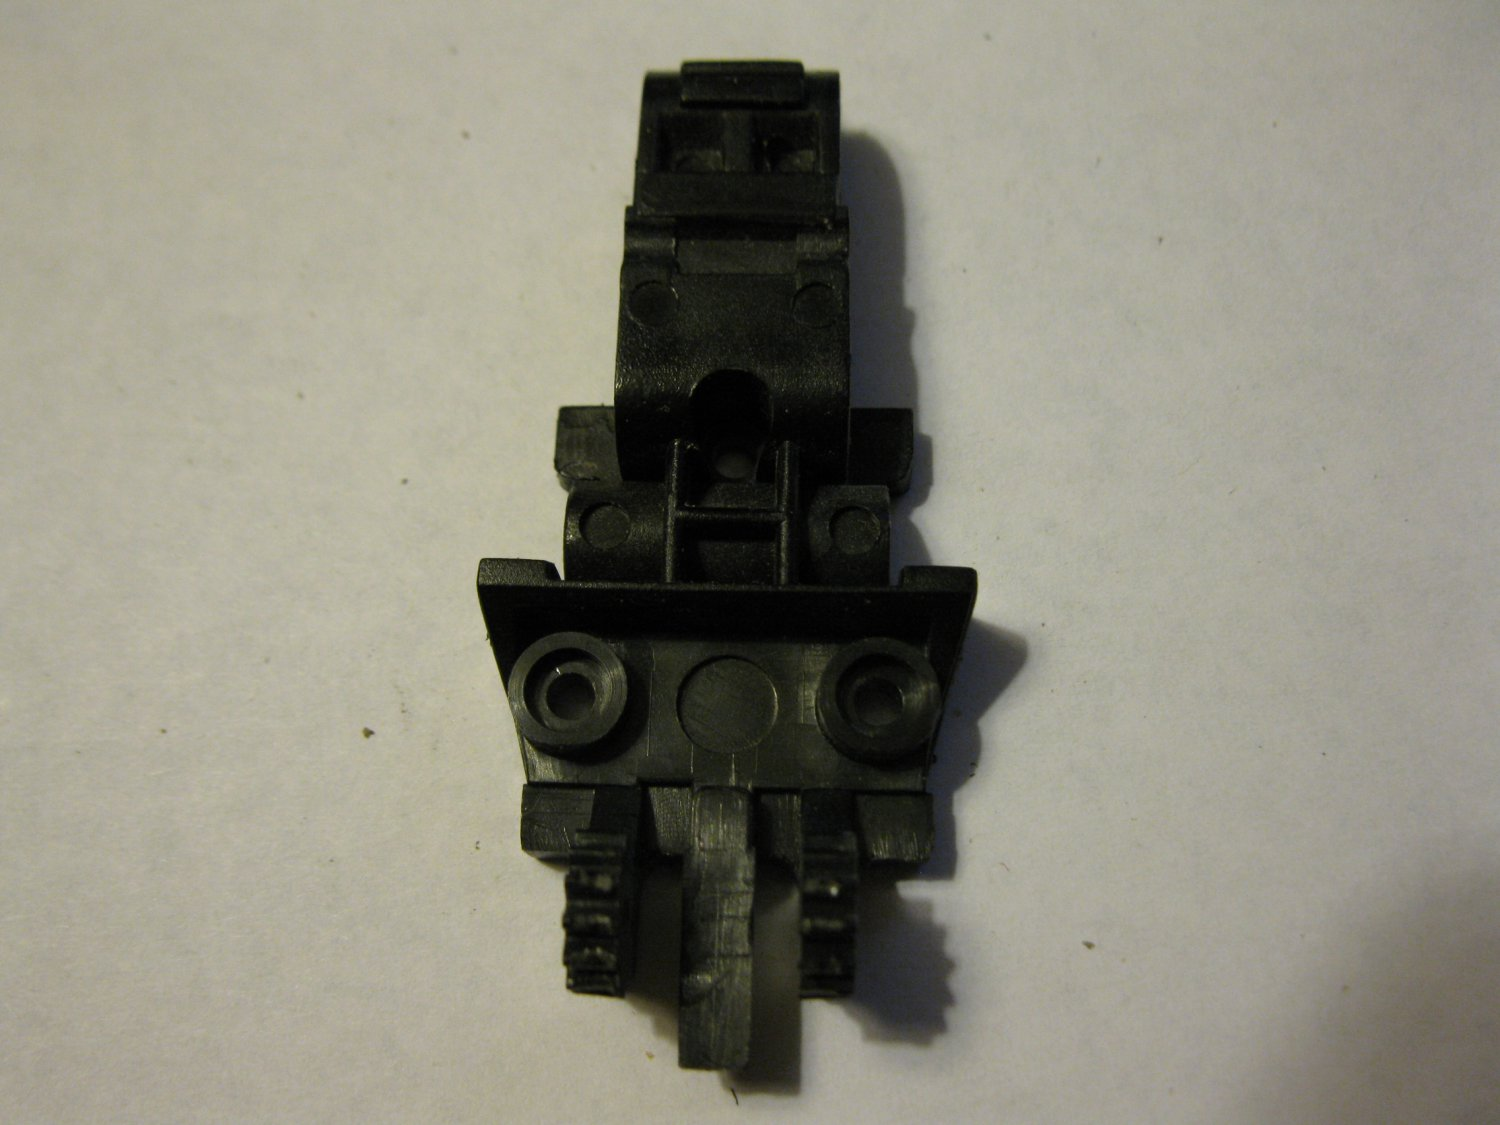 G1 Transformers Action figure part: 1986 Blurr - Body Section